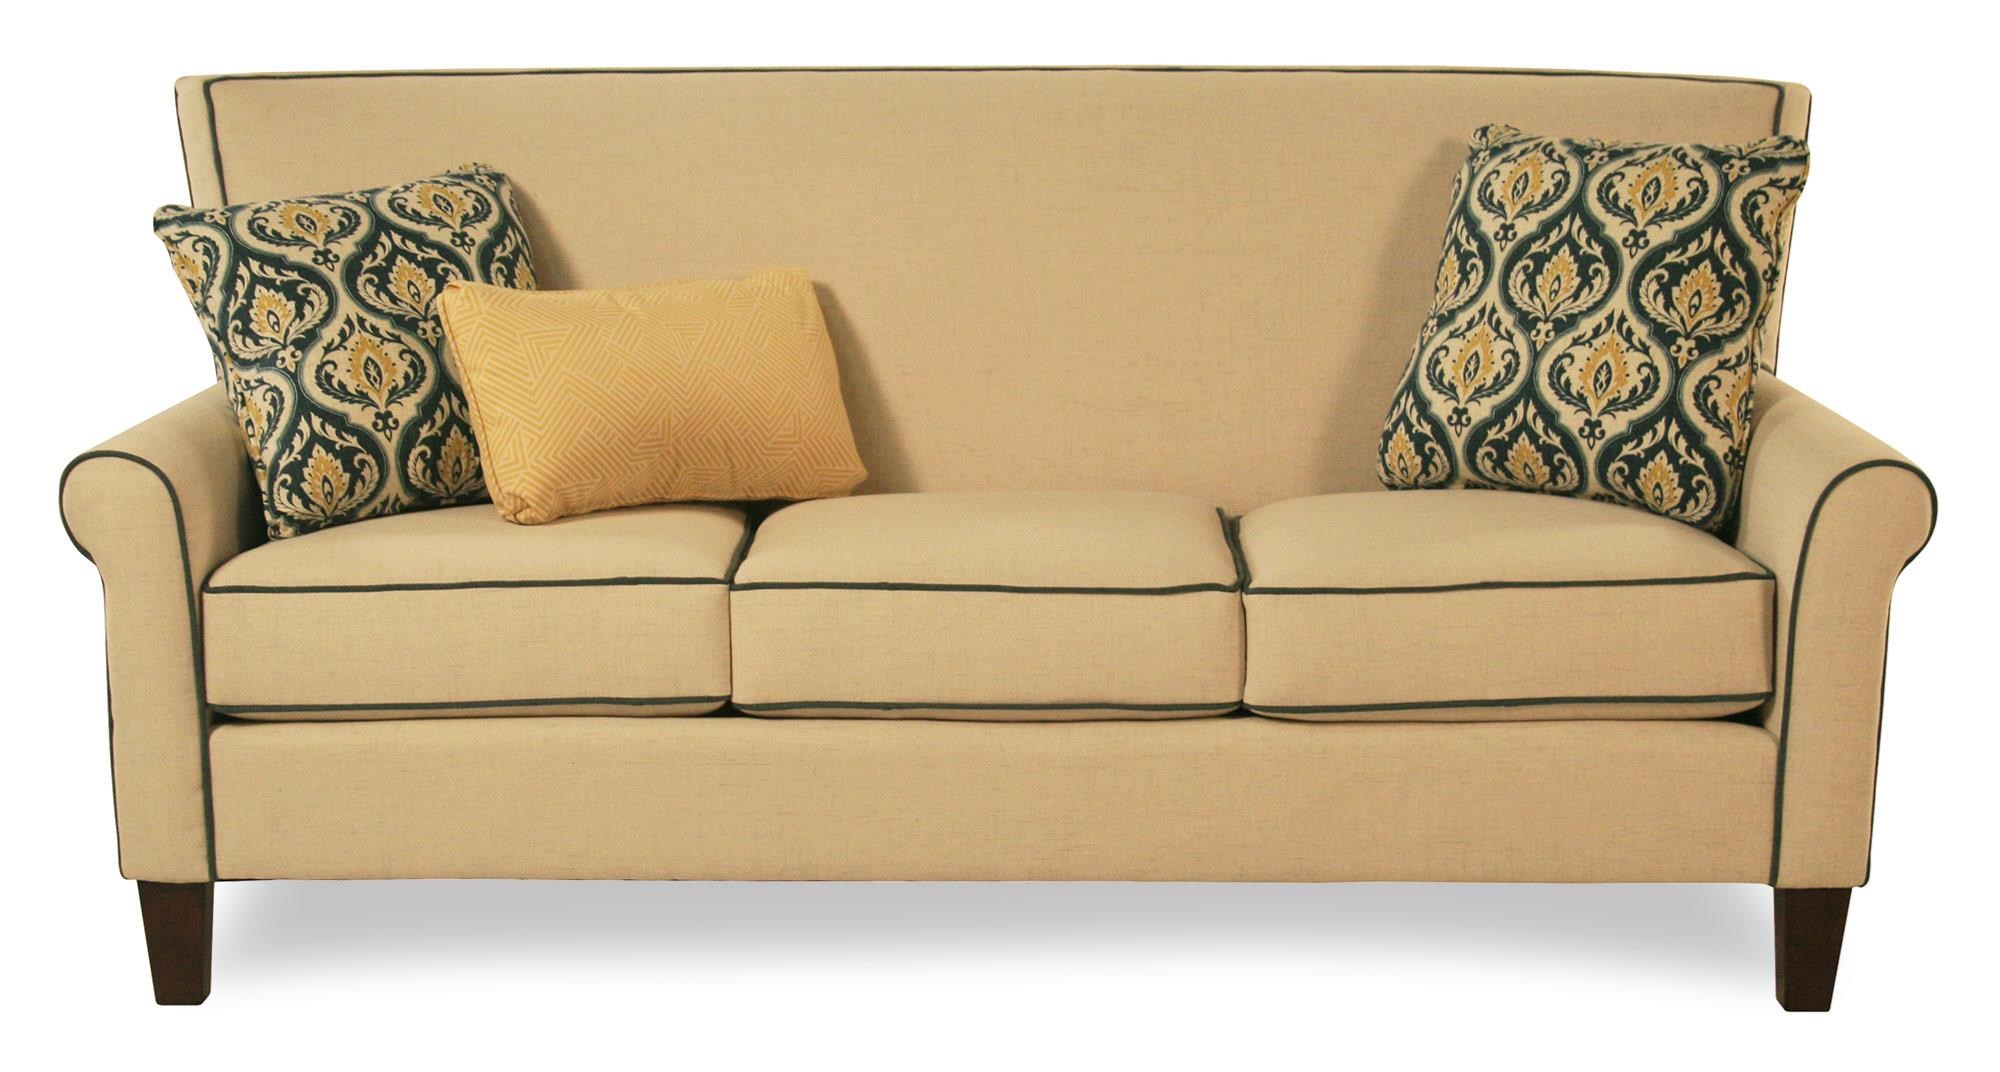 Cozy Life Mazie Tight Back Sofa - Item Number: 751650-BAMBOO31